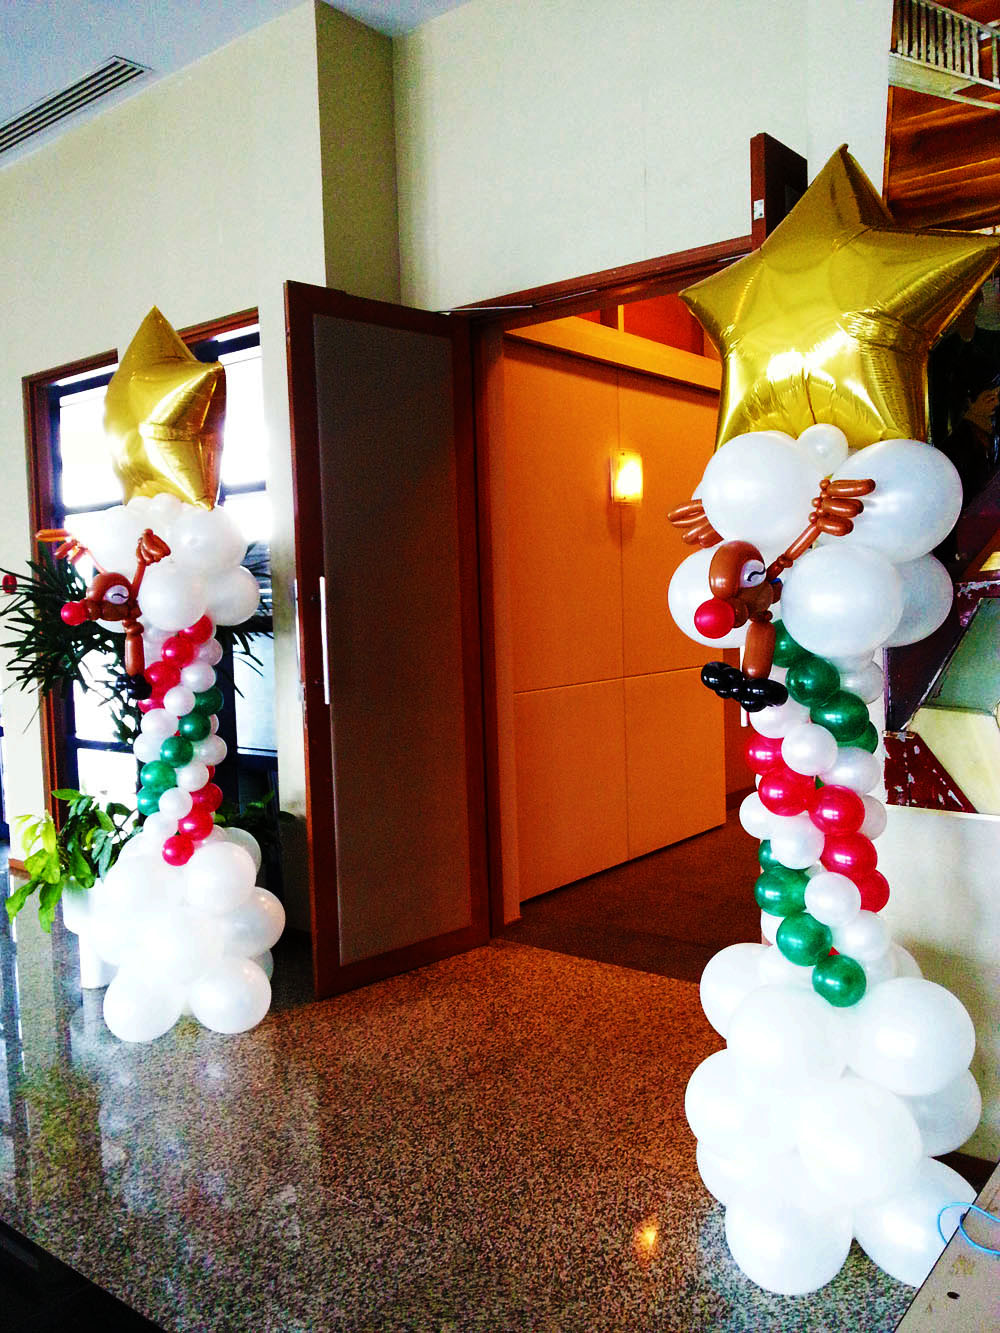 , Balloon Columns, Singapore Balloon Decoration Services - Balloon Workshop and Balloon Sculpting